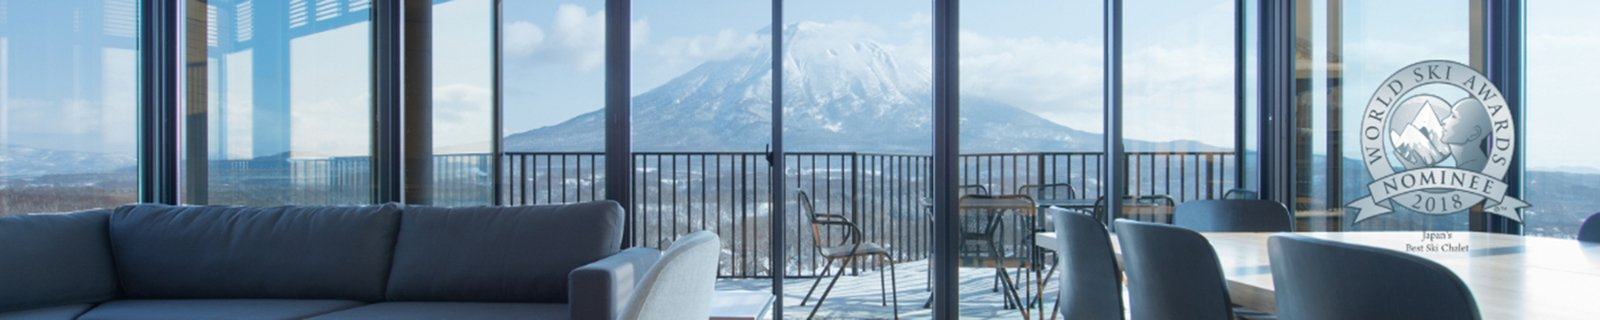 vacation-niseko-aspect-banner-world-ski-awards